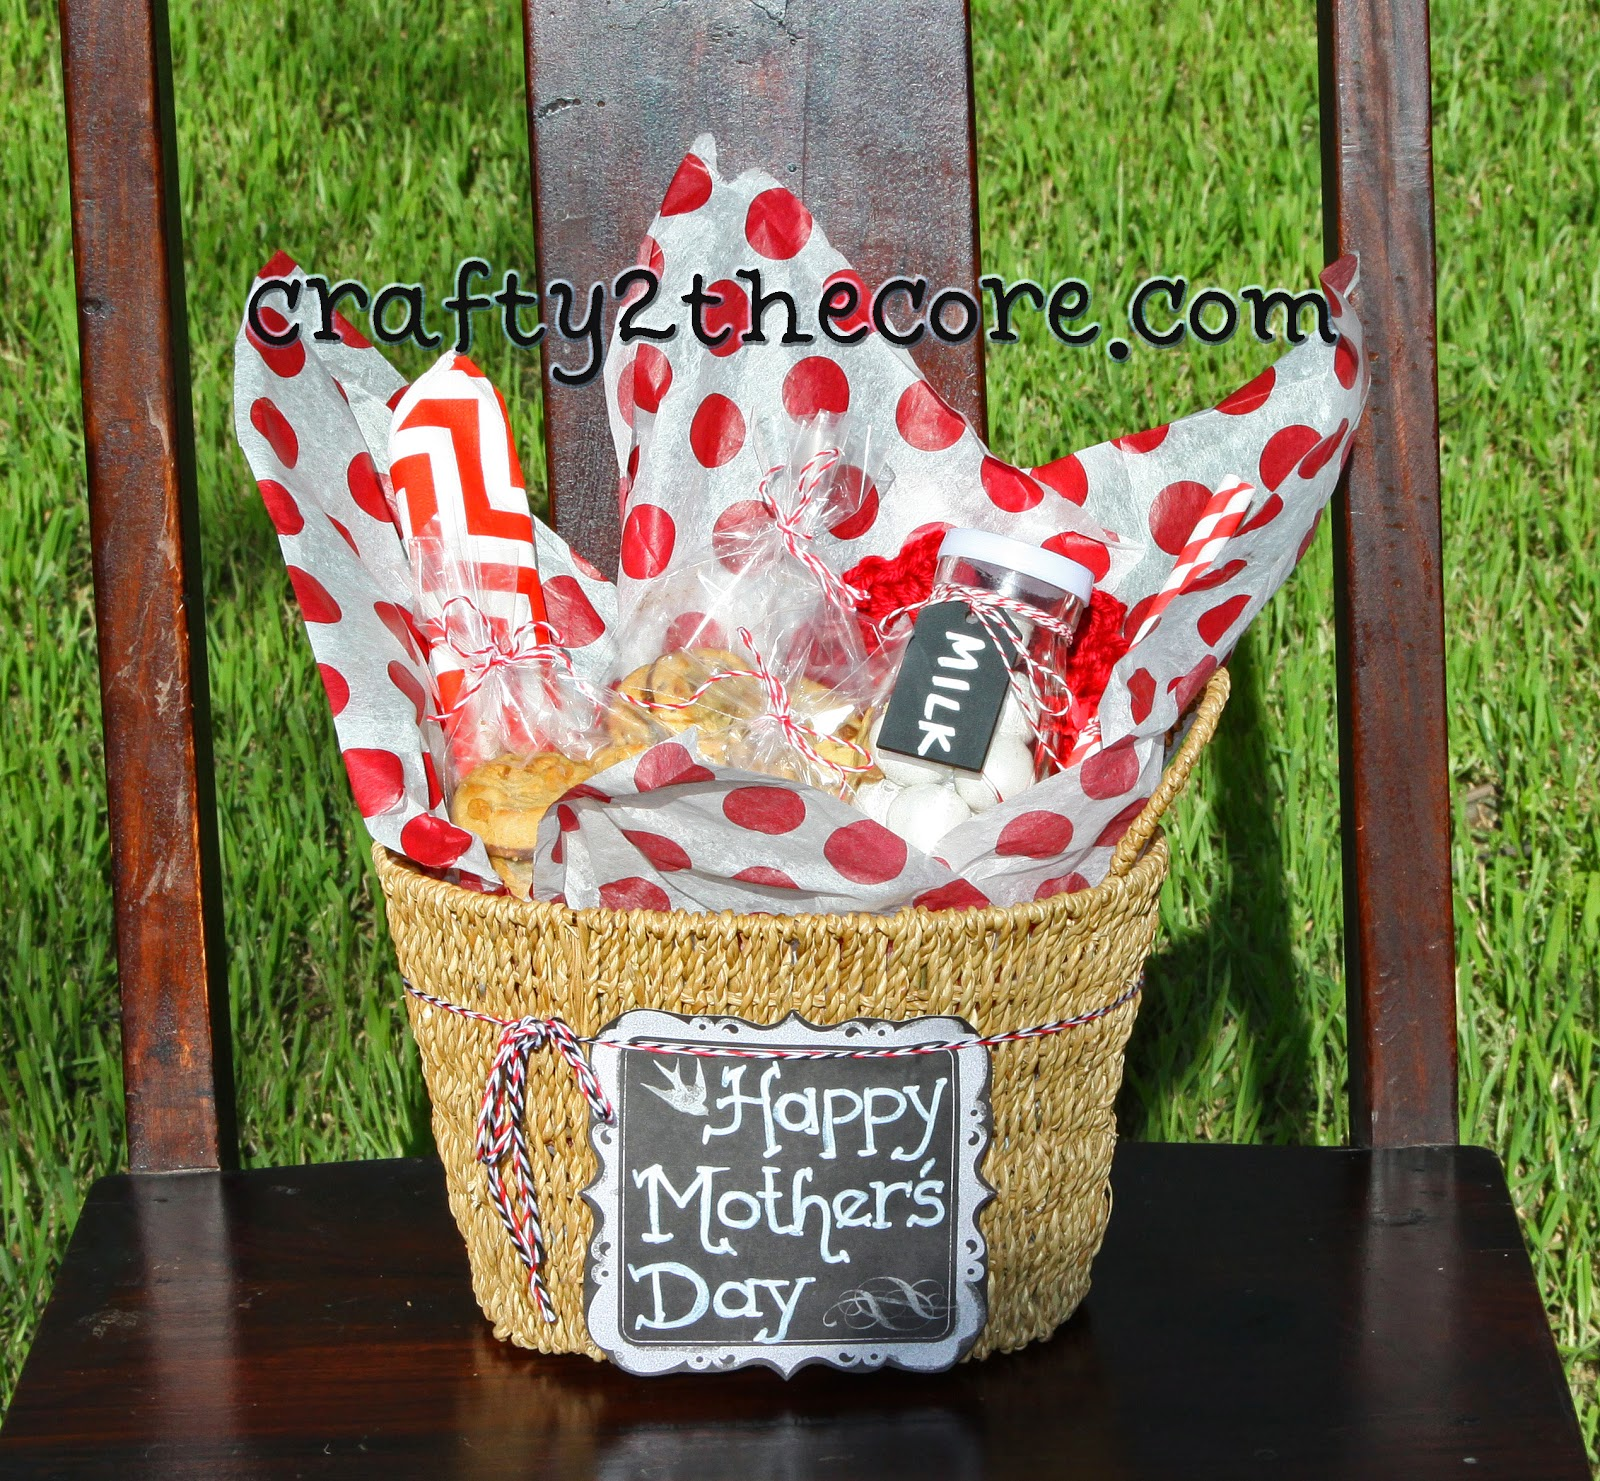 Mother's Day Gift Idea for neighbor, grandma, Mrs. Field's Cookies, milk jar, candy,